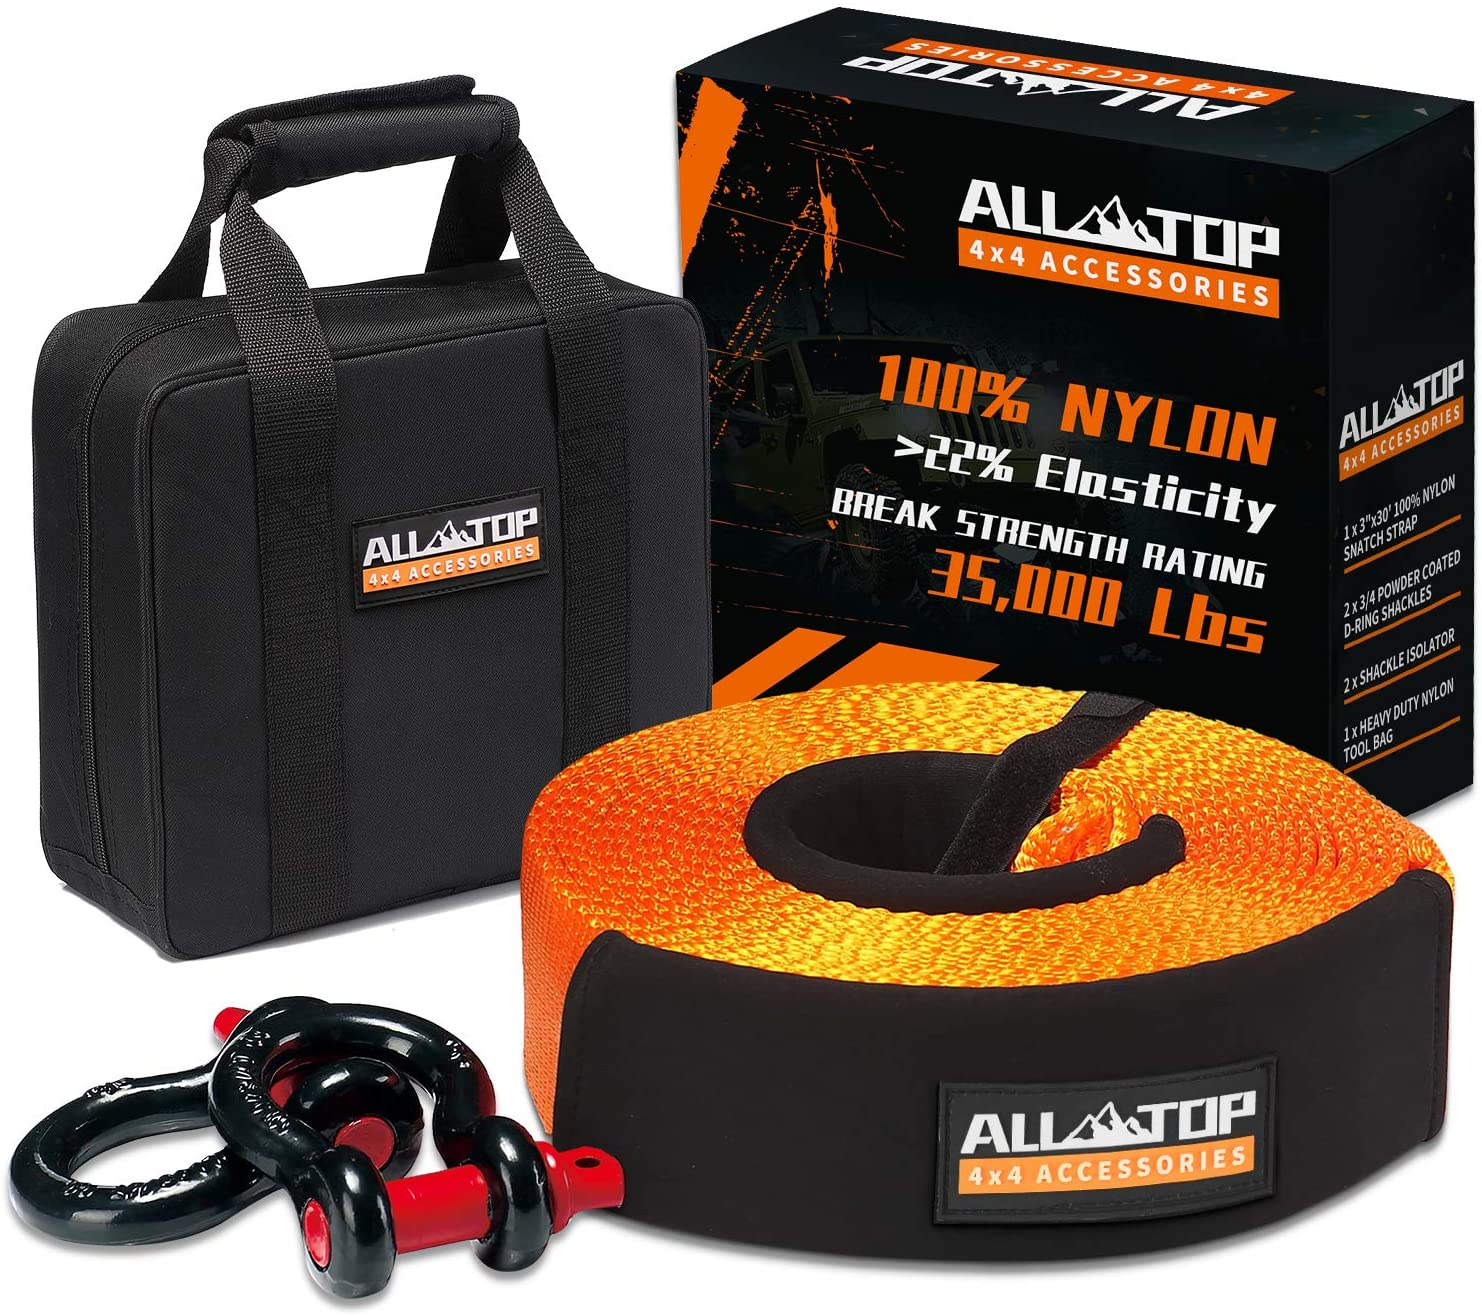 All-Top tow straps kits